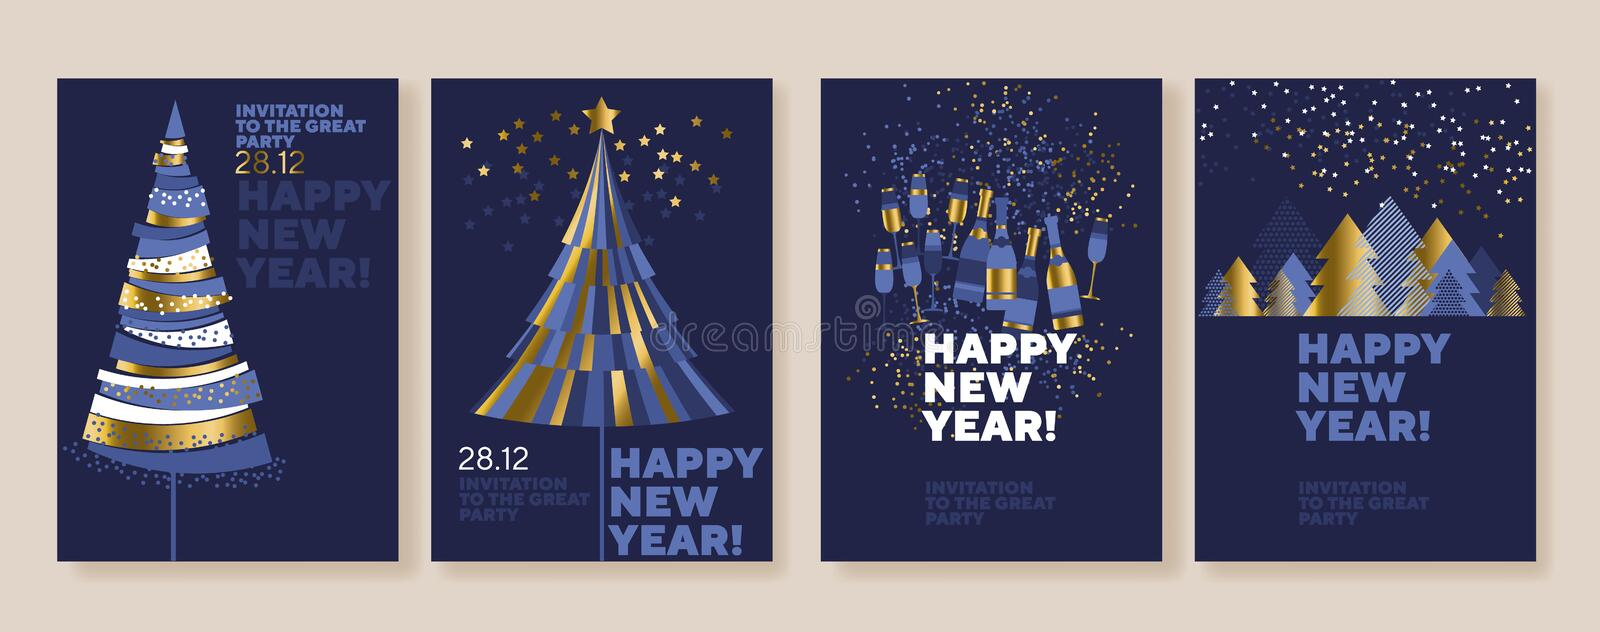 New Year and abstract Christmas tree posters stock illustration